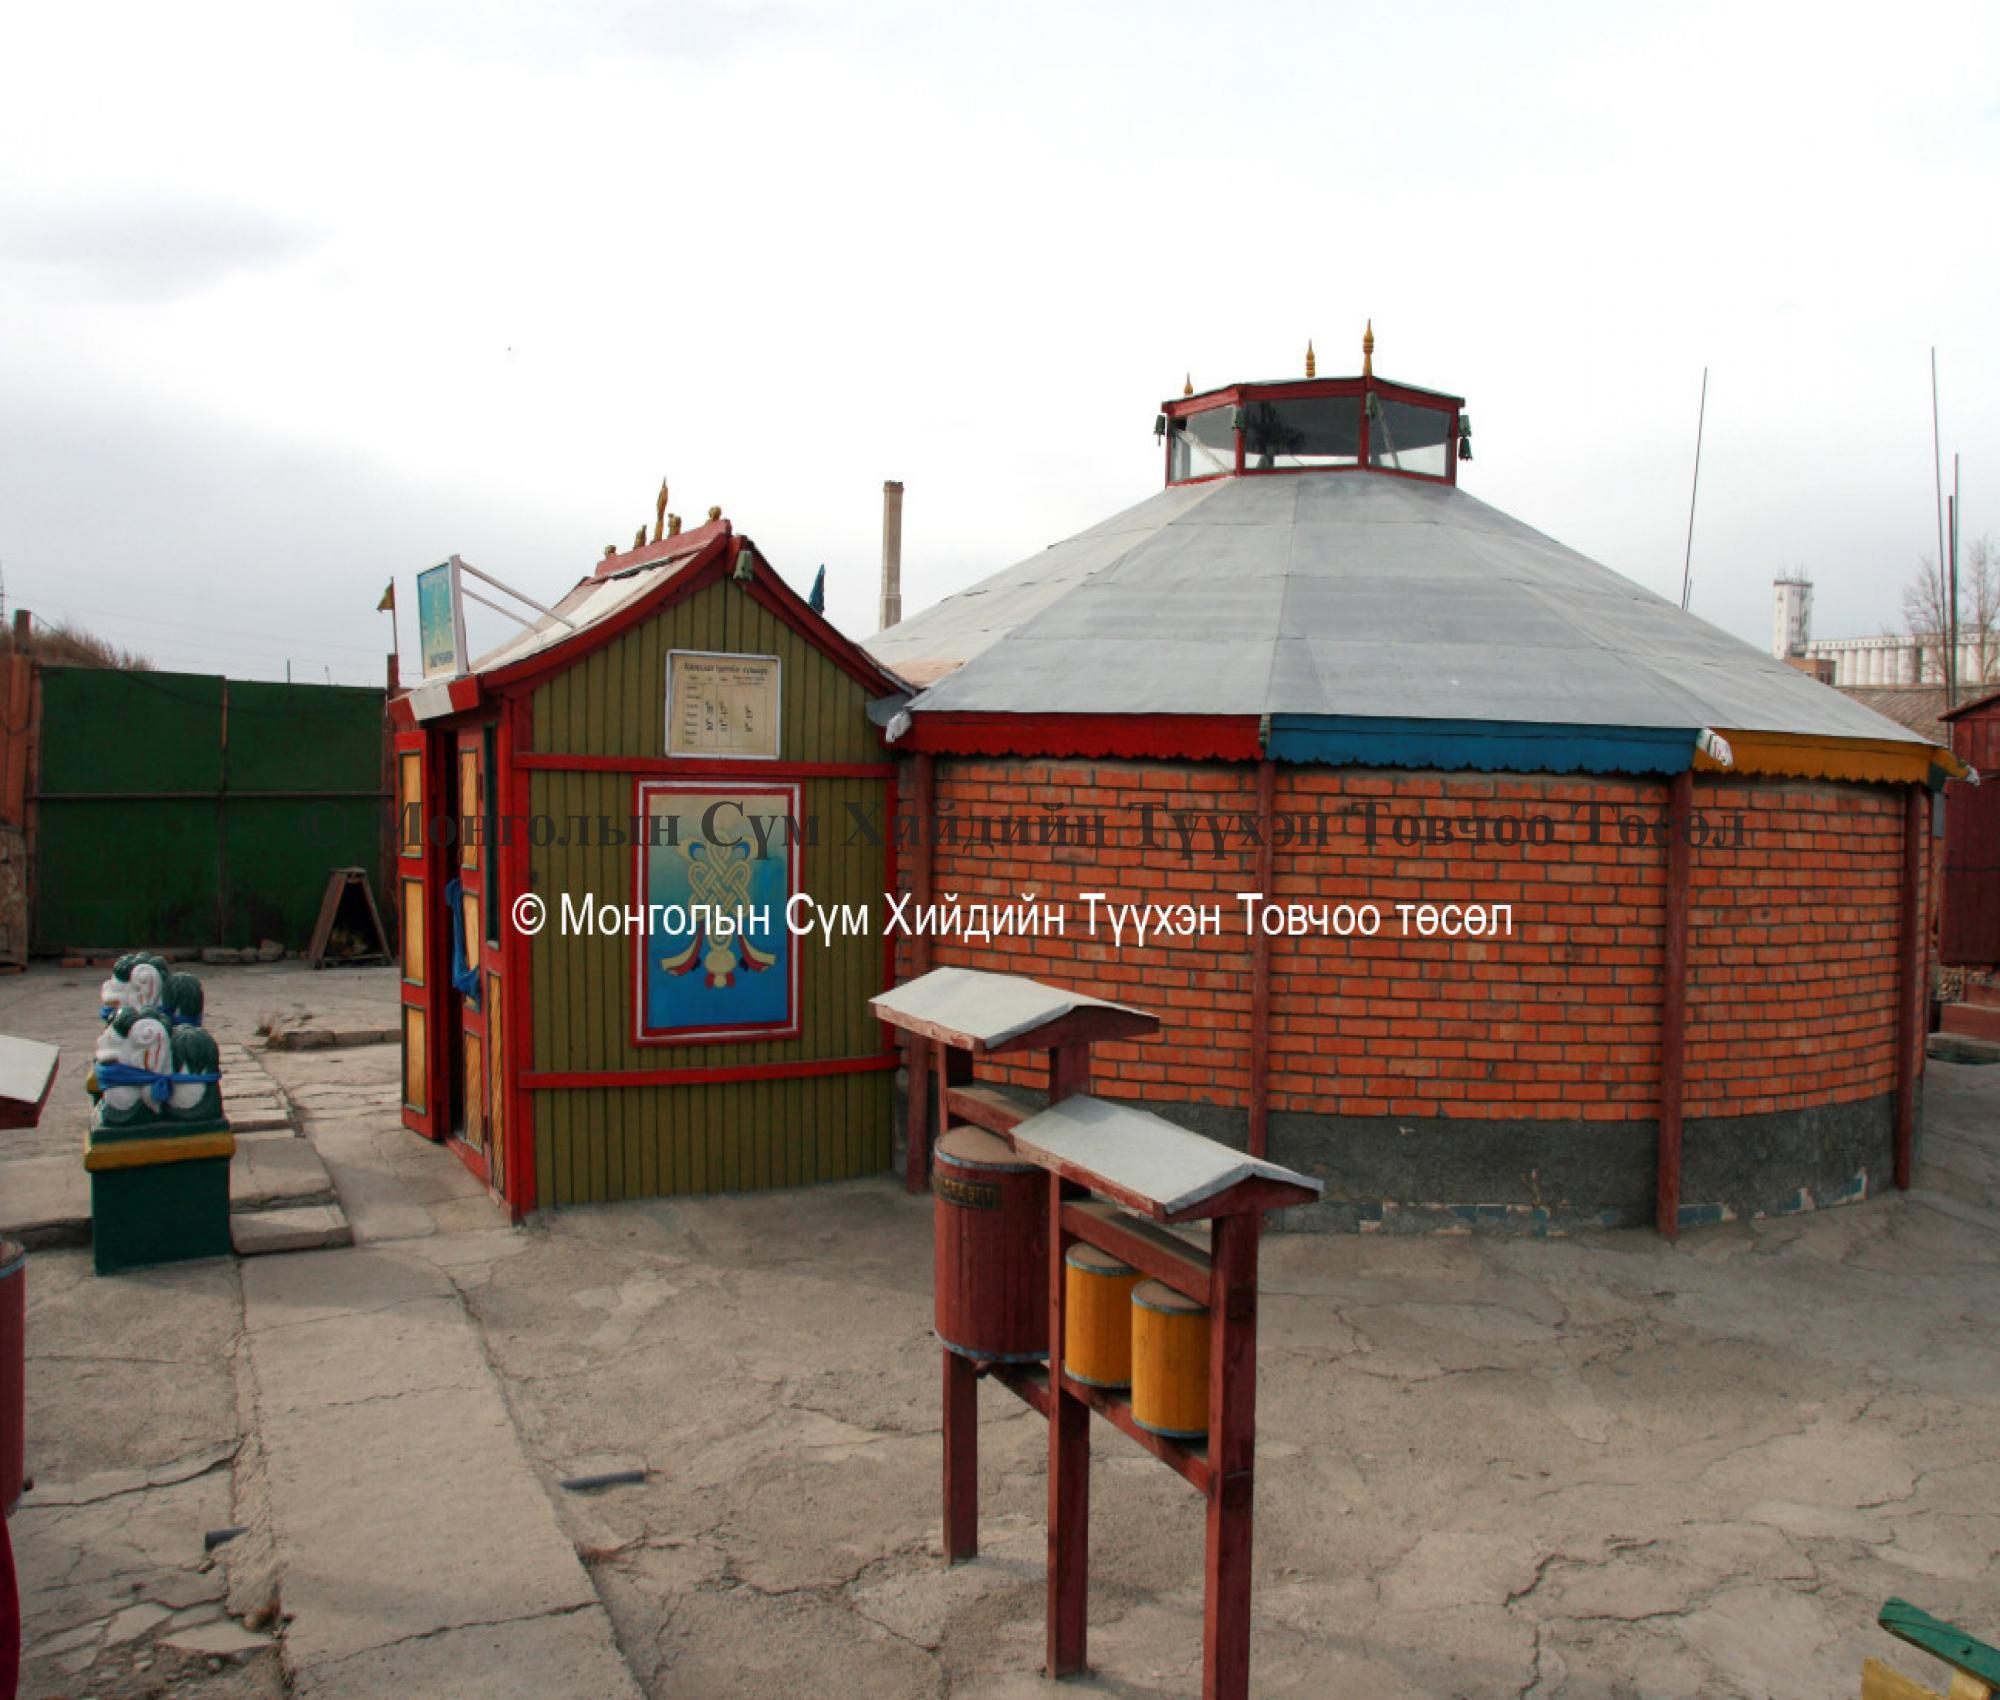 The yurt-temple